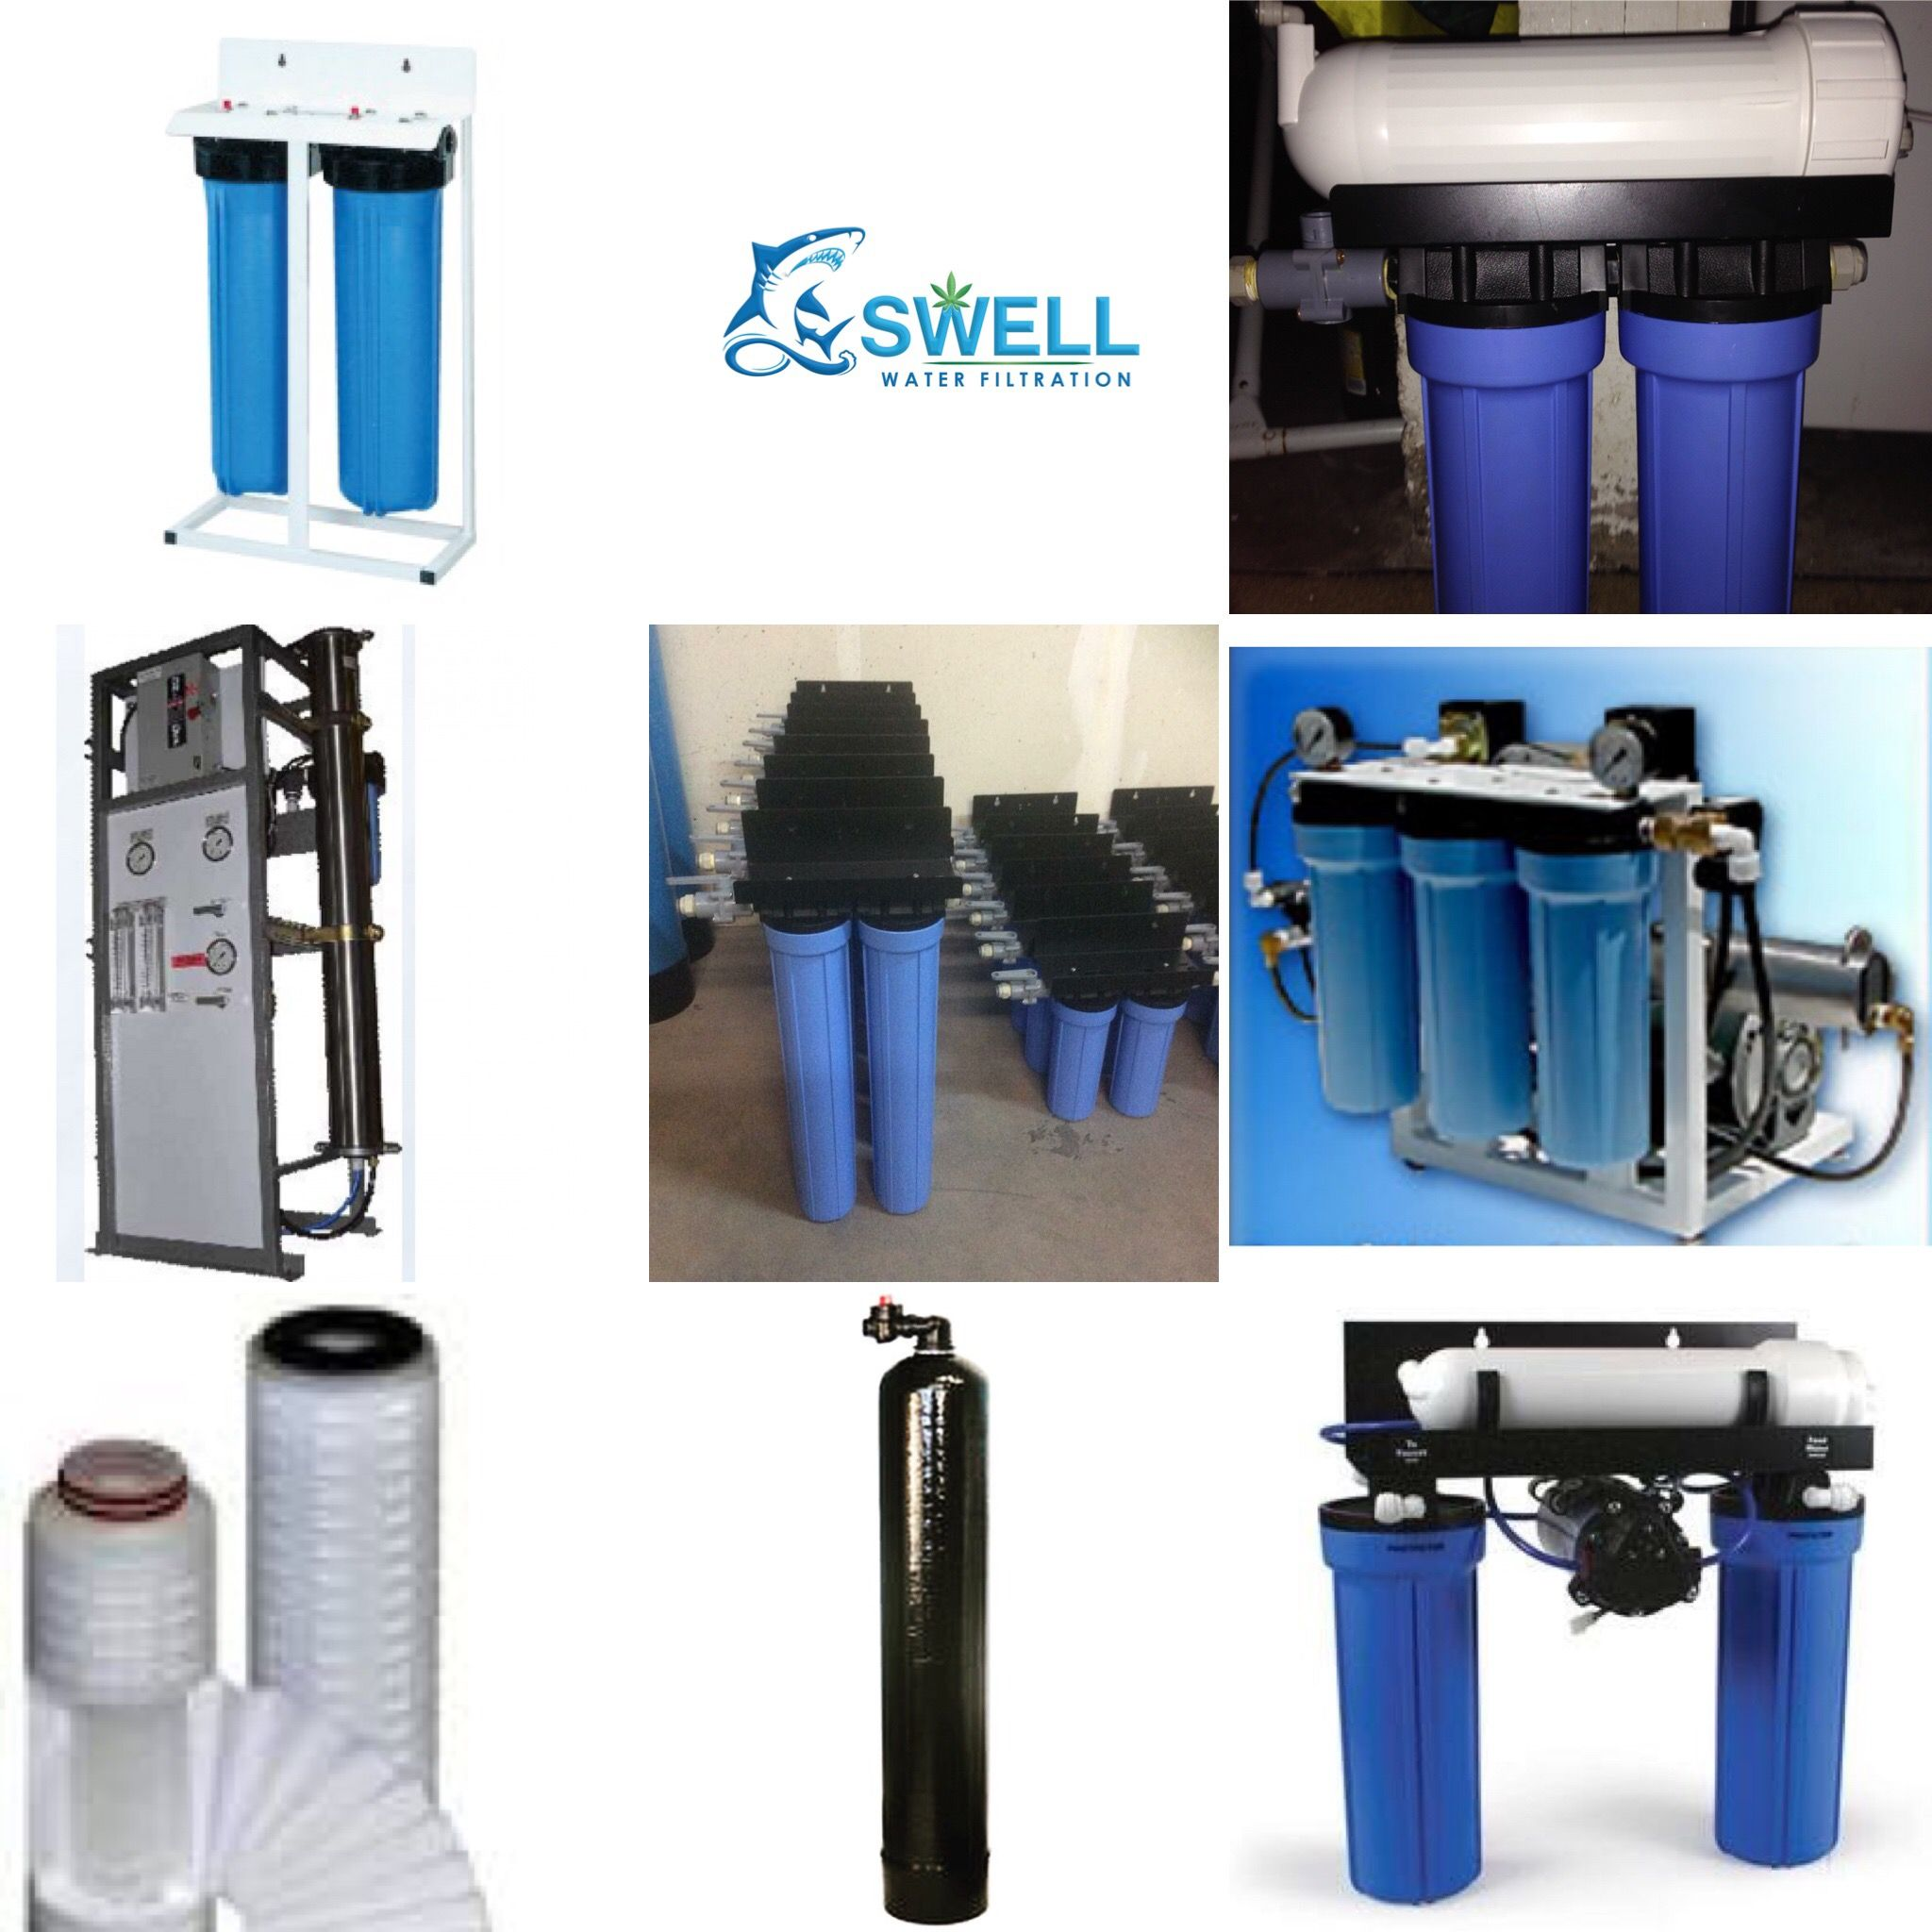 pin by shannon mooney on swell water filtration pinterest